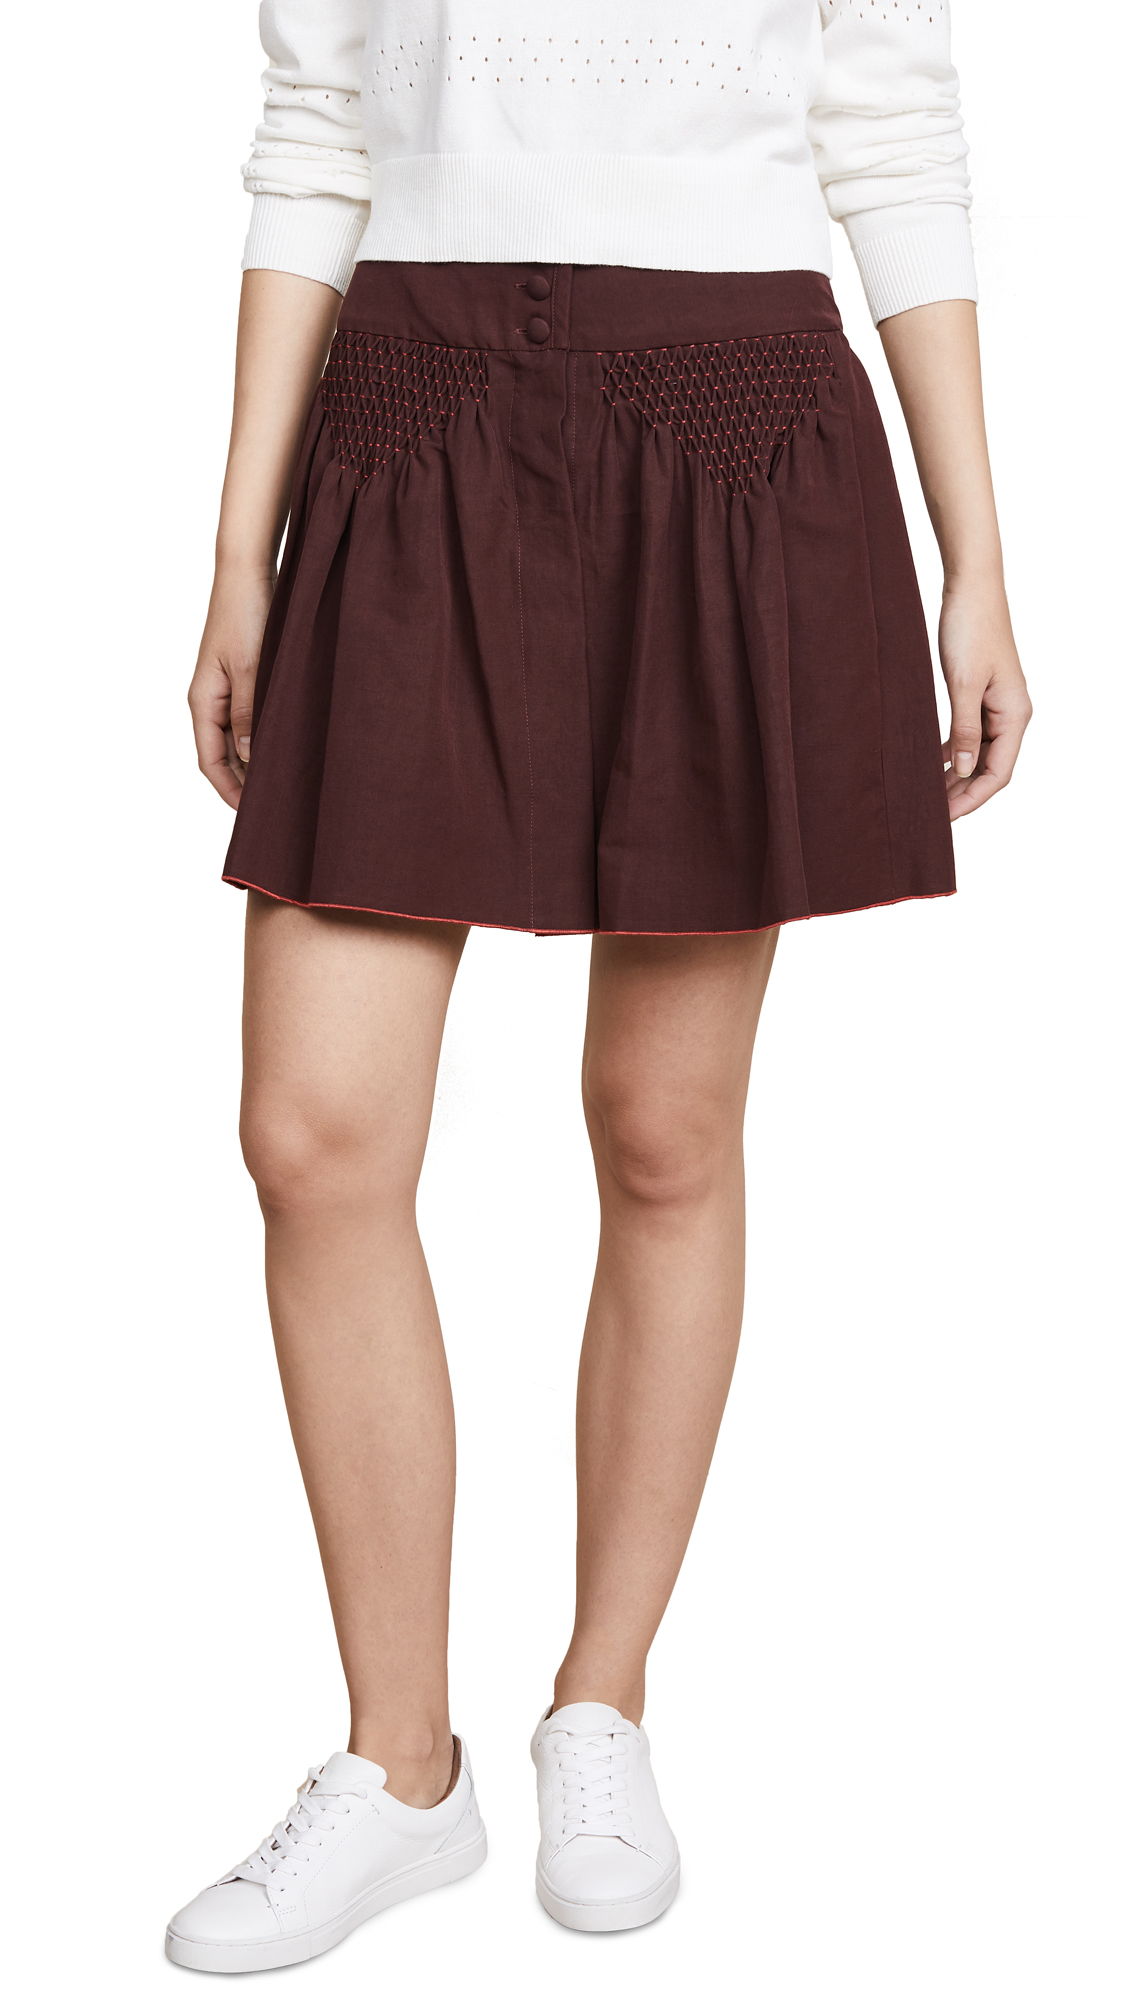 A.P.C. Morgan Skirt In Bordeaux